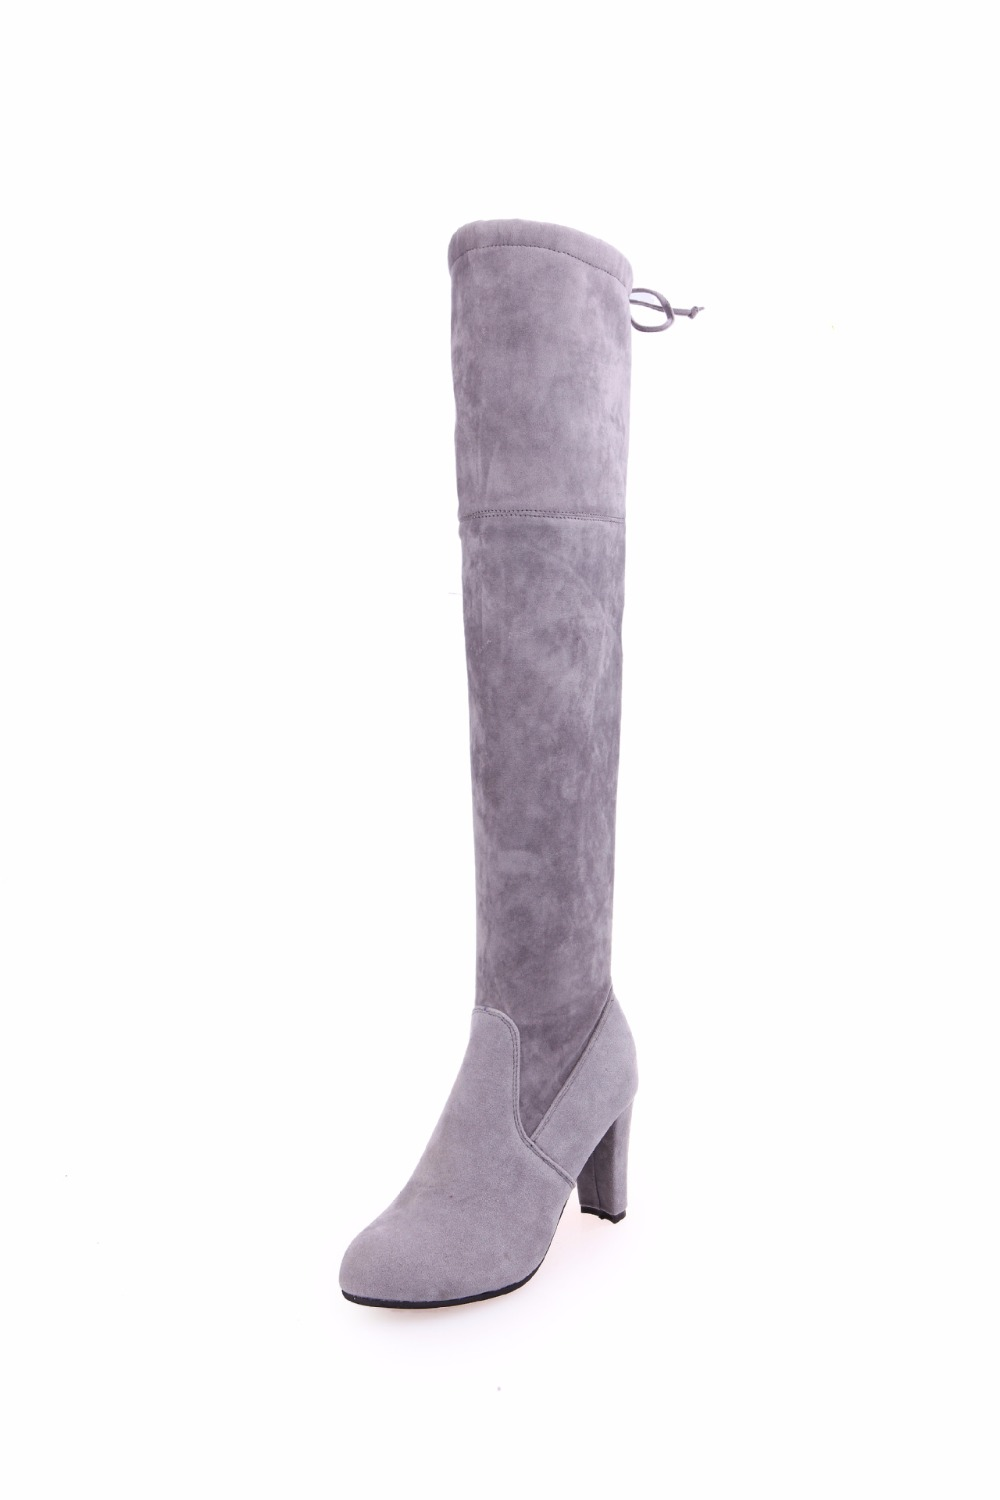 2017 new Boots Sexy over the knee high women snow boots women's fashion winter thigh high boots shoes woman womens lace up over knee high suede women snow boots fashion zipper round toe winter thigh high boots shoes woman